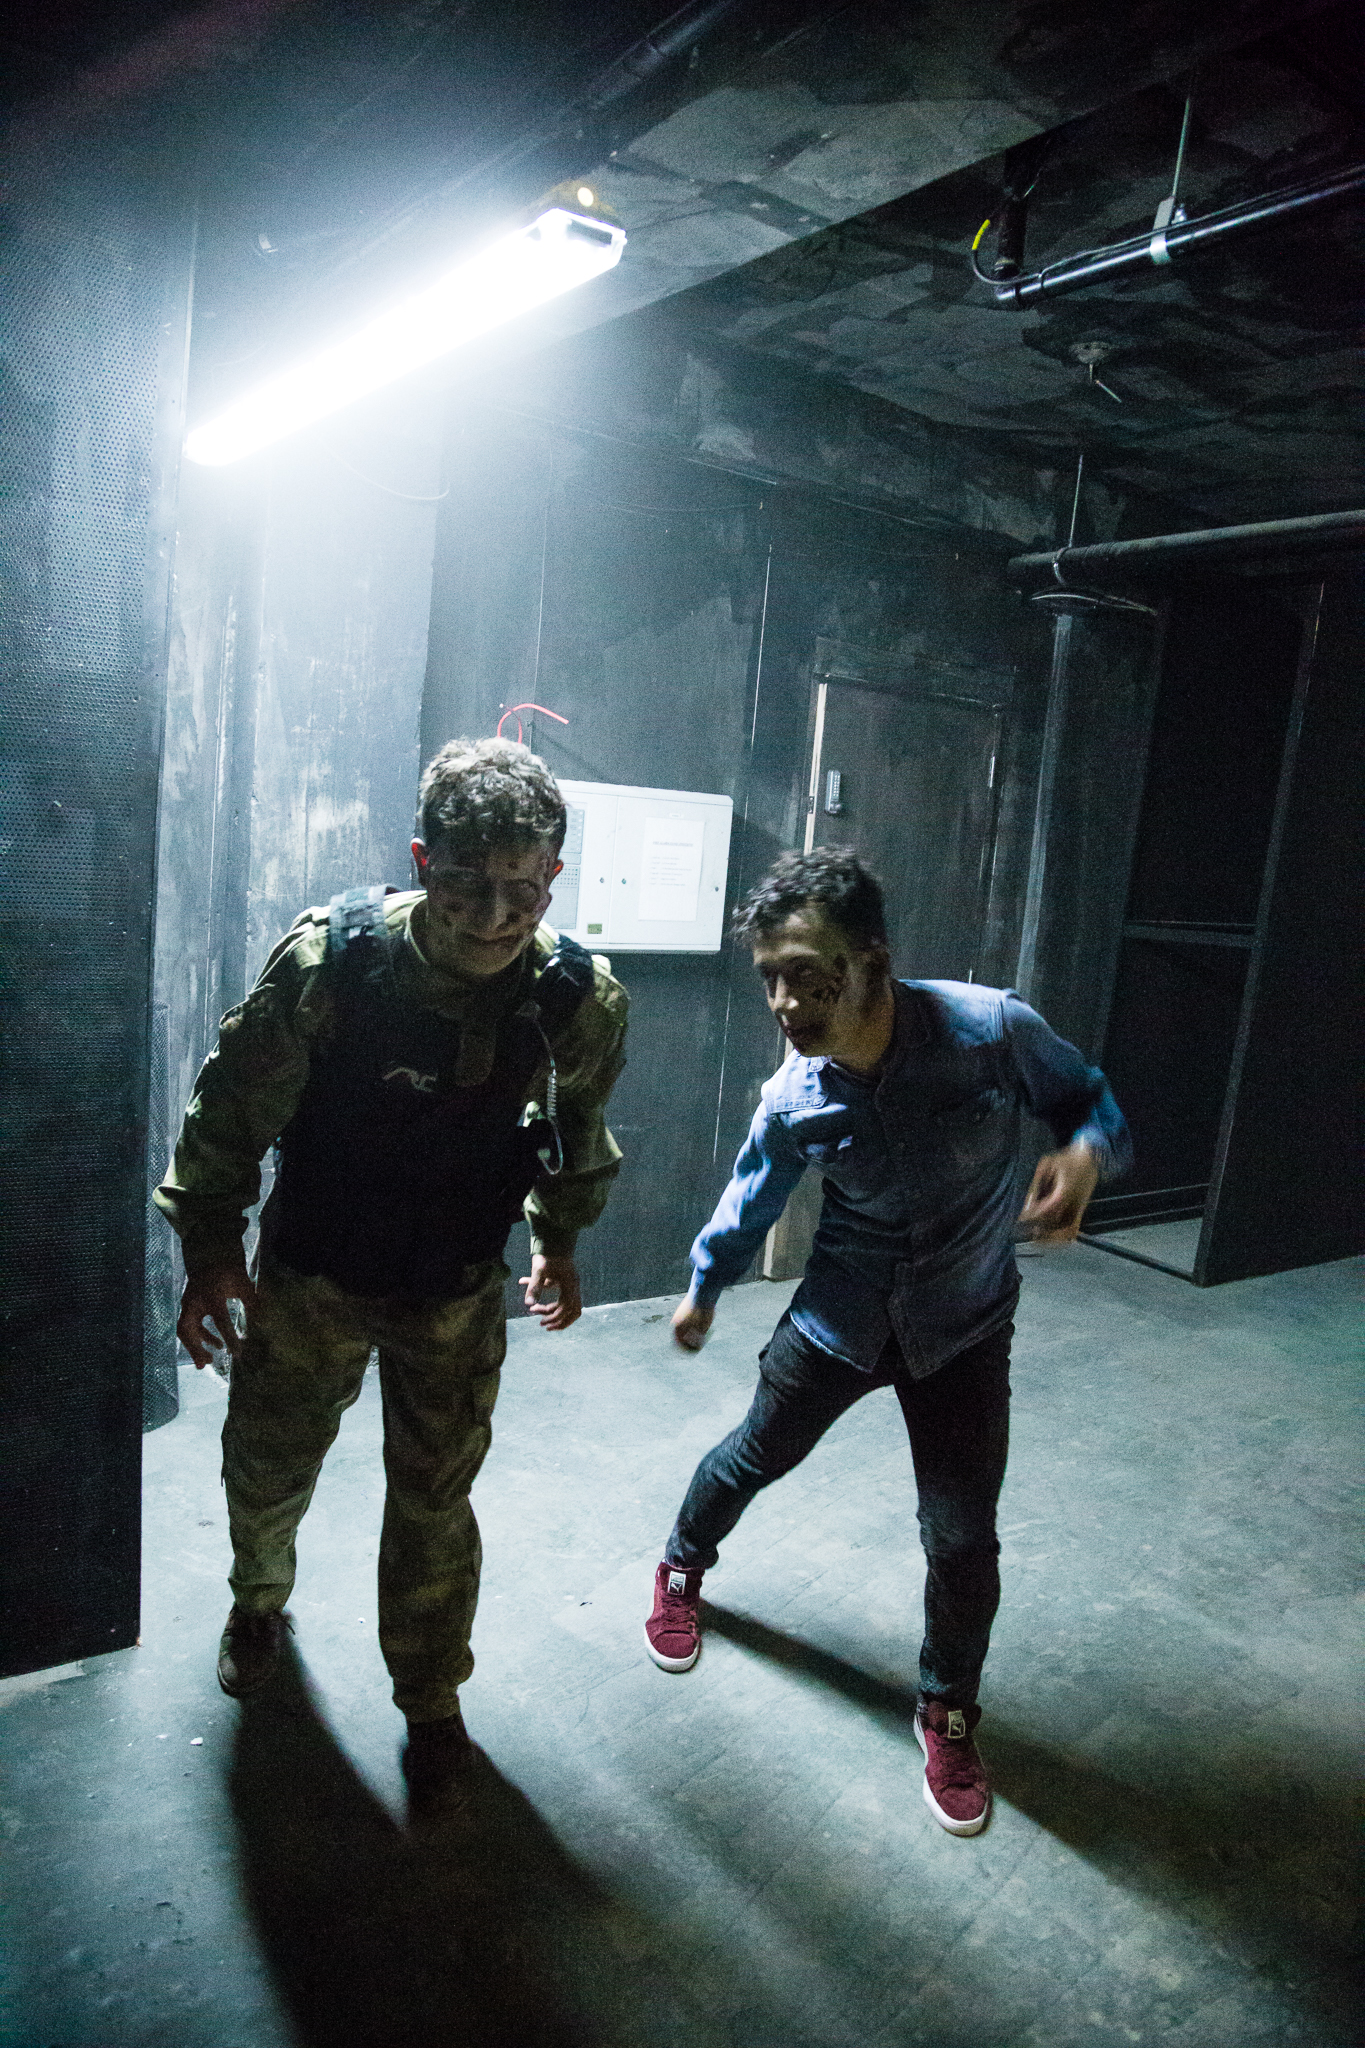 The Generation of Z is the latest zombie scare attraction to hit London, and it's terrifying